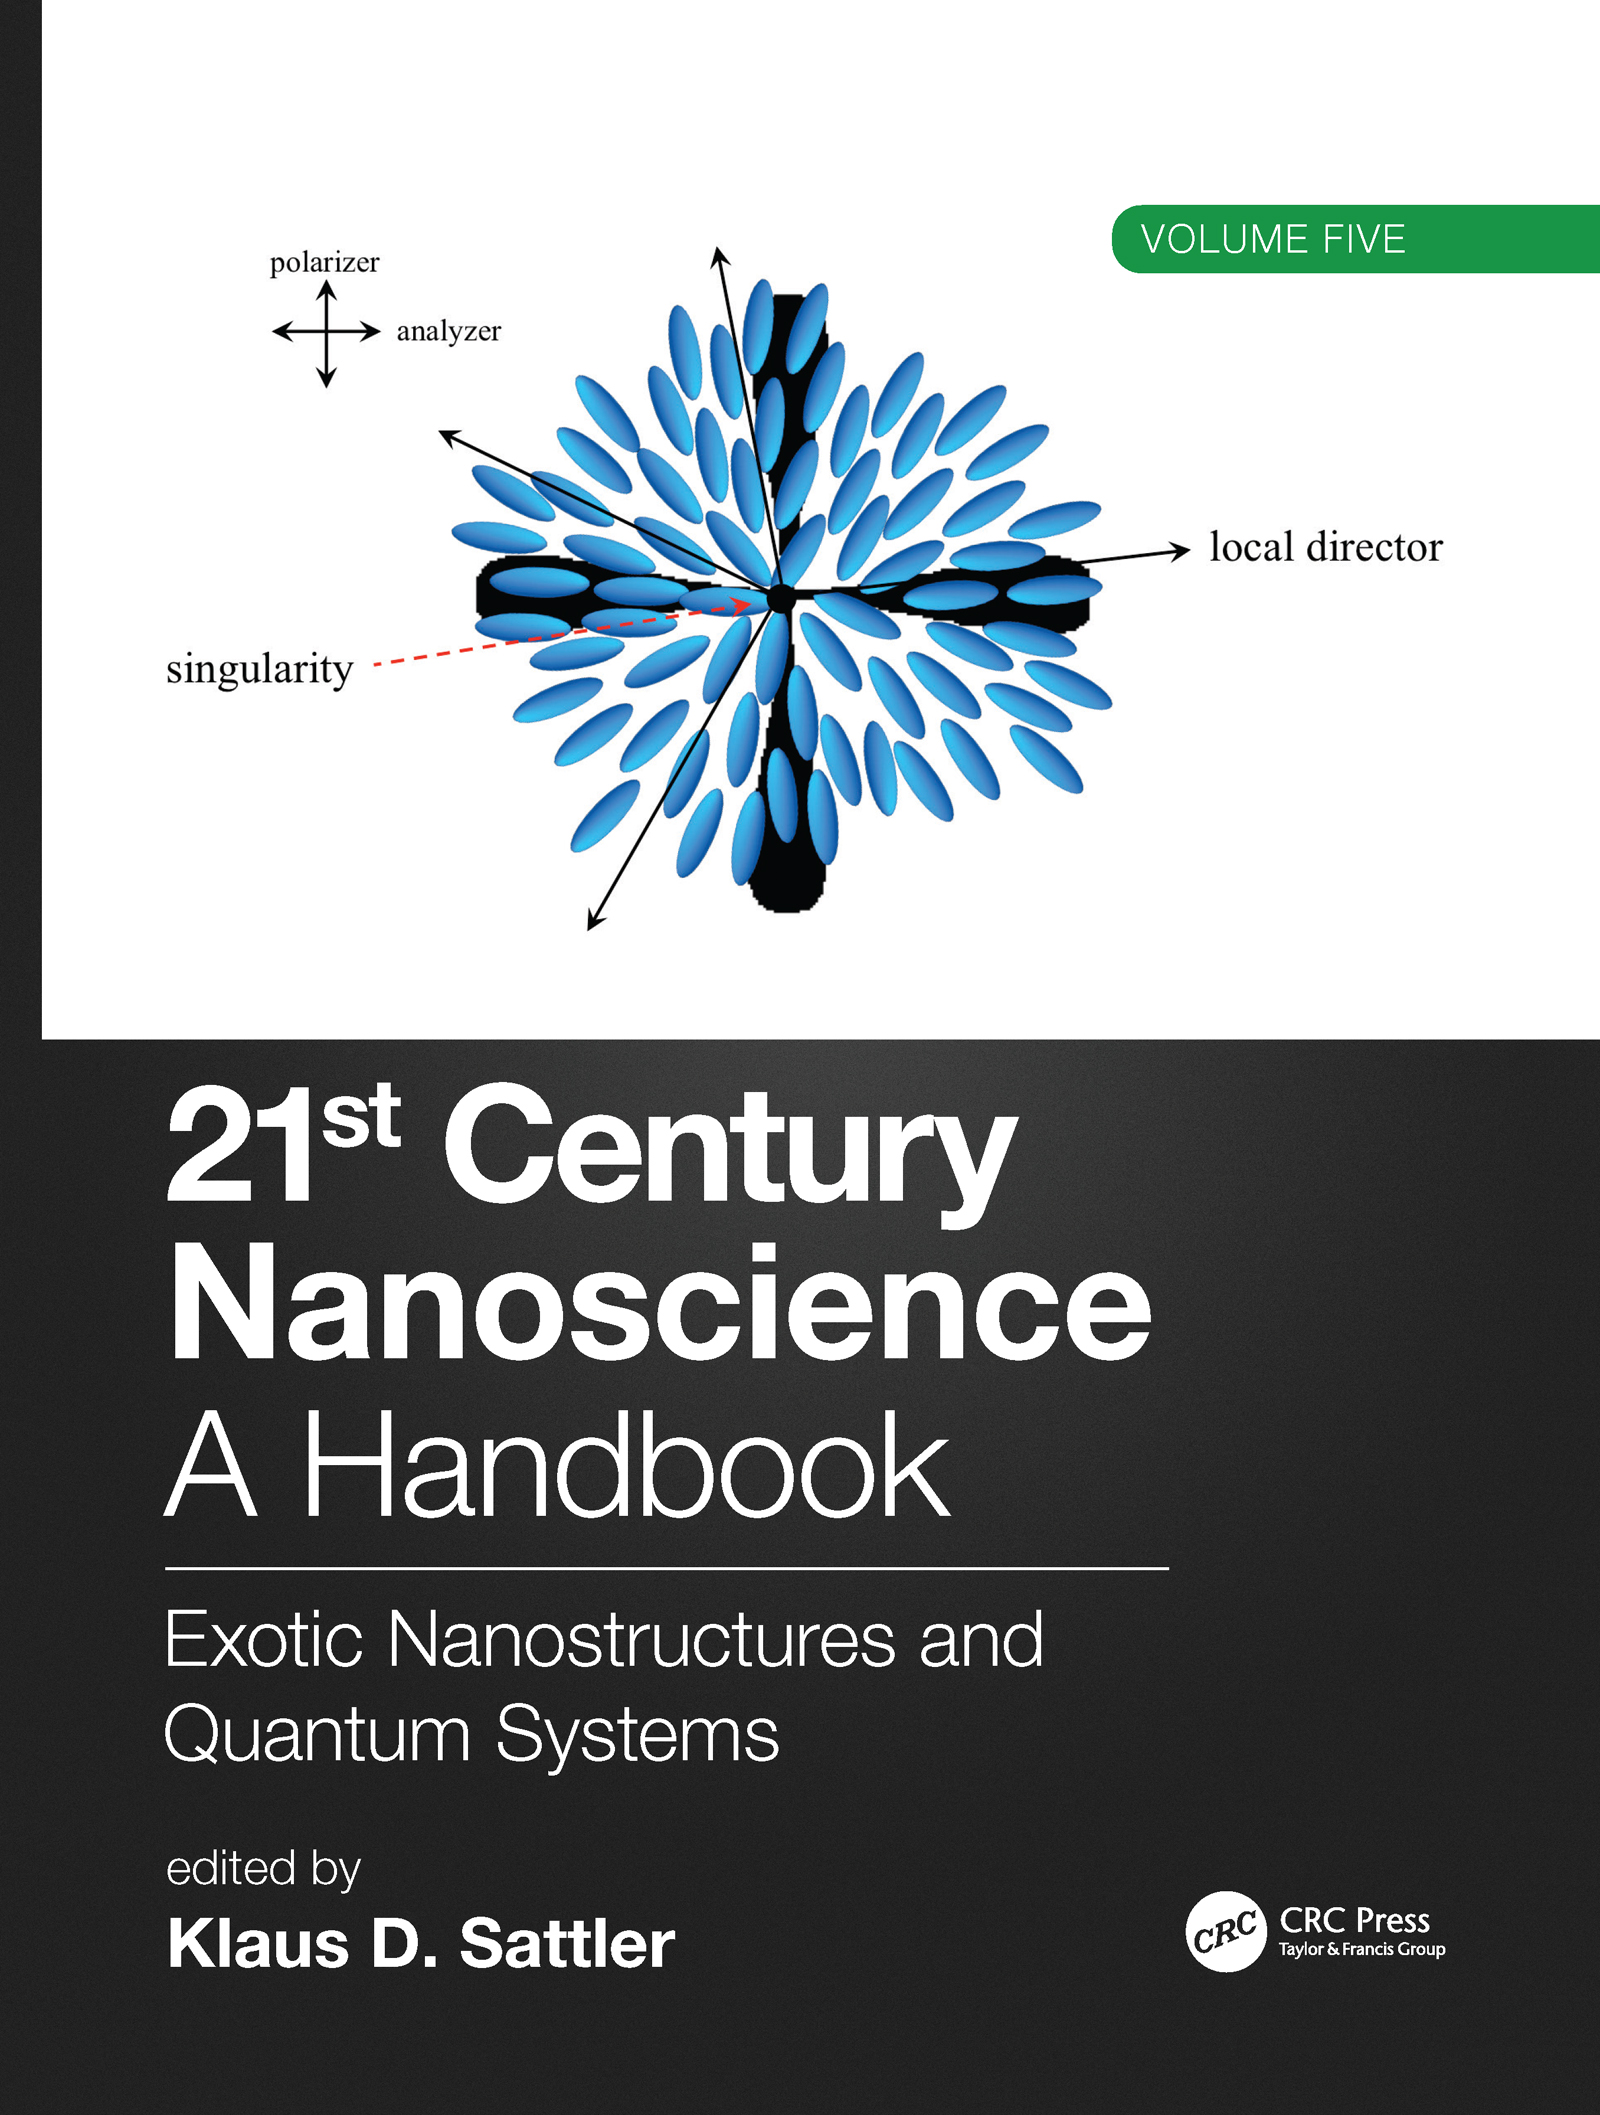 21st Century Nanoscience – A Handbook: Exotic Nanostructures and Quantum Systems (Volume Five) book cover